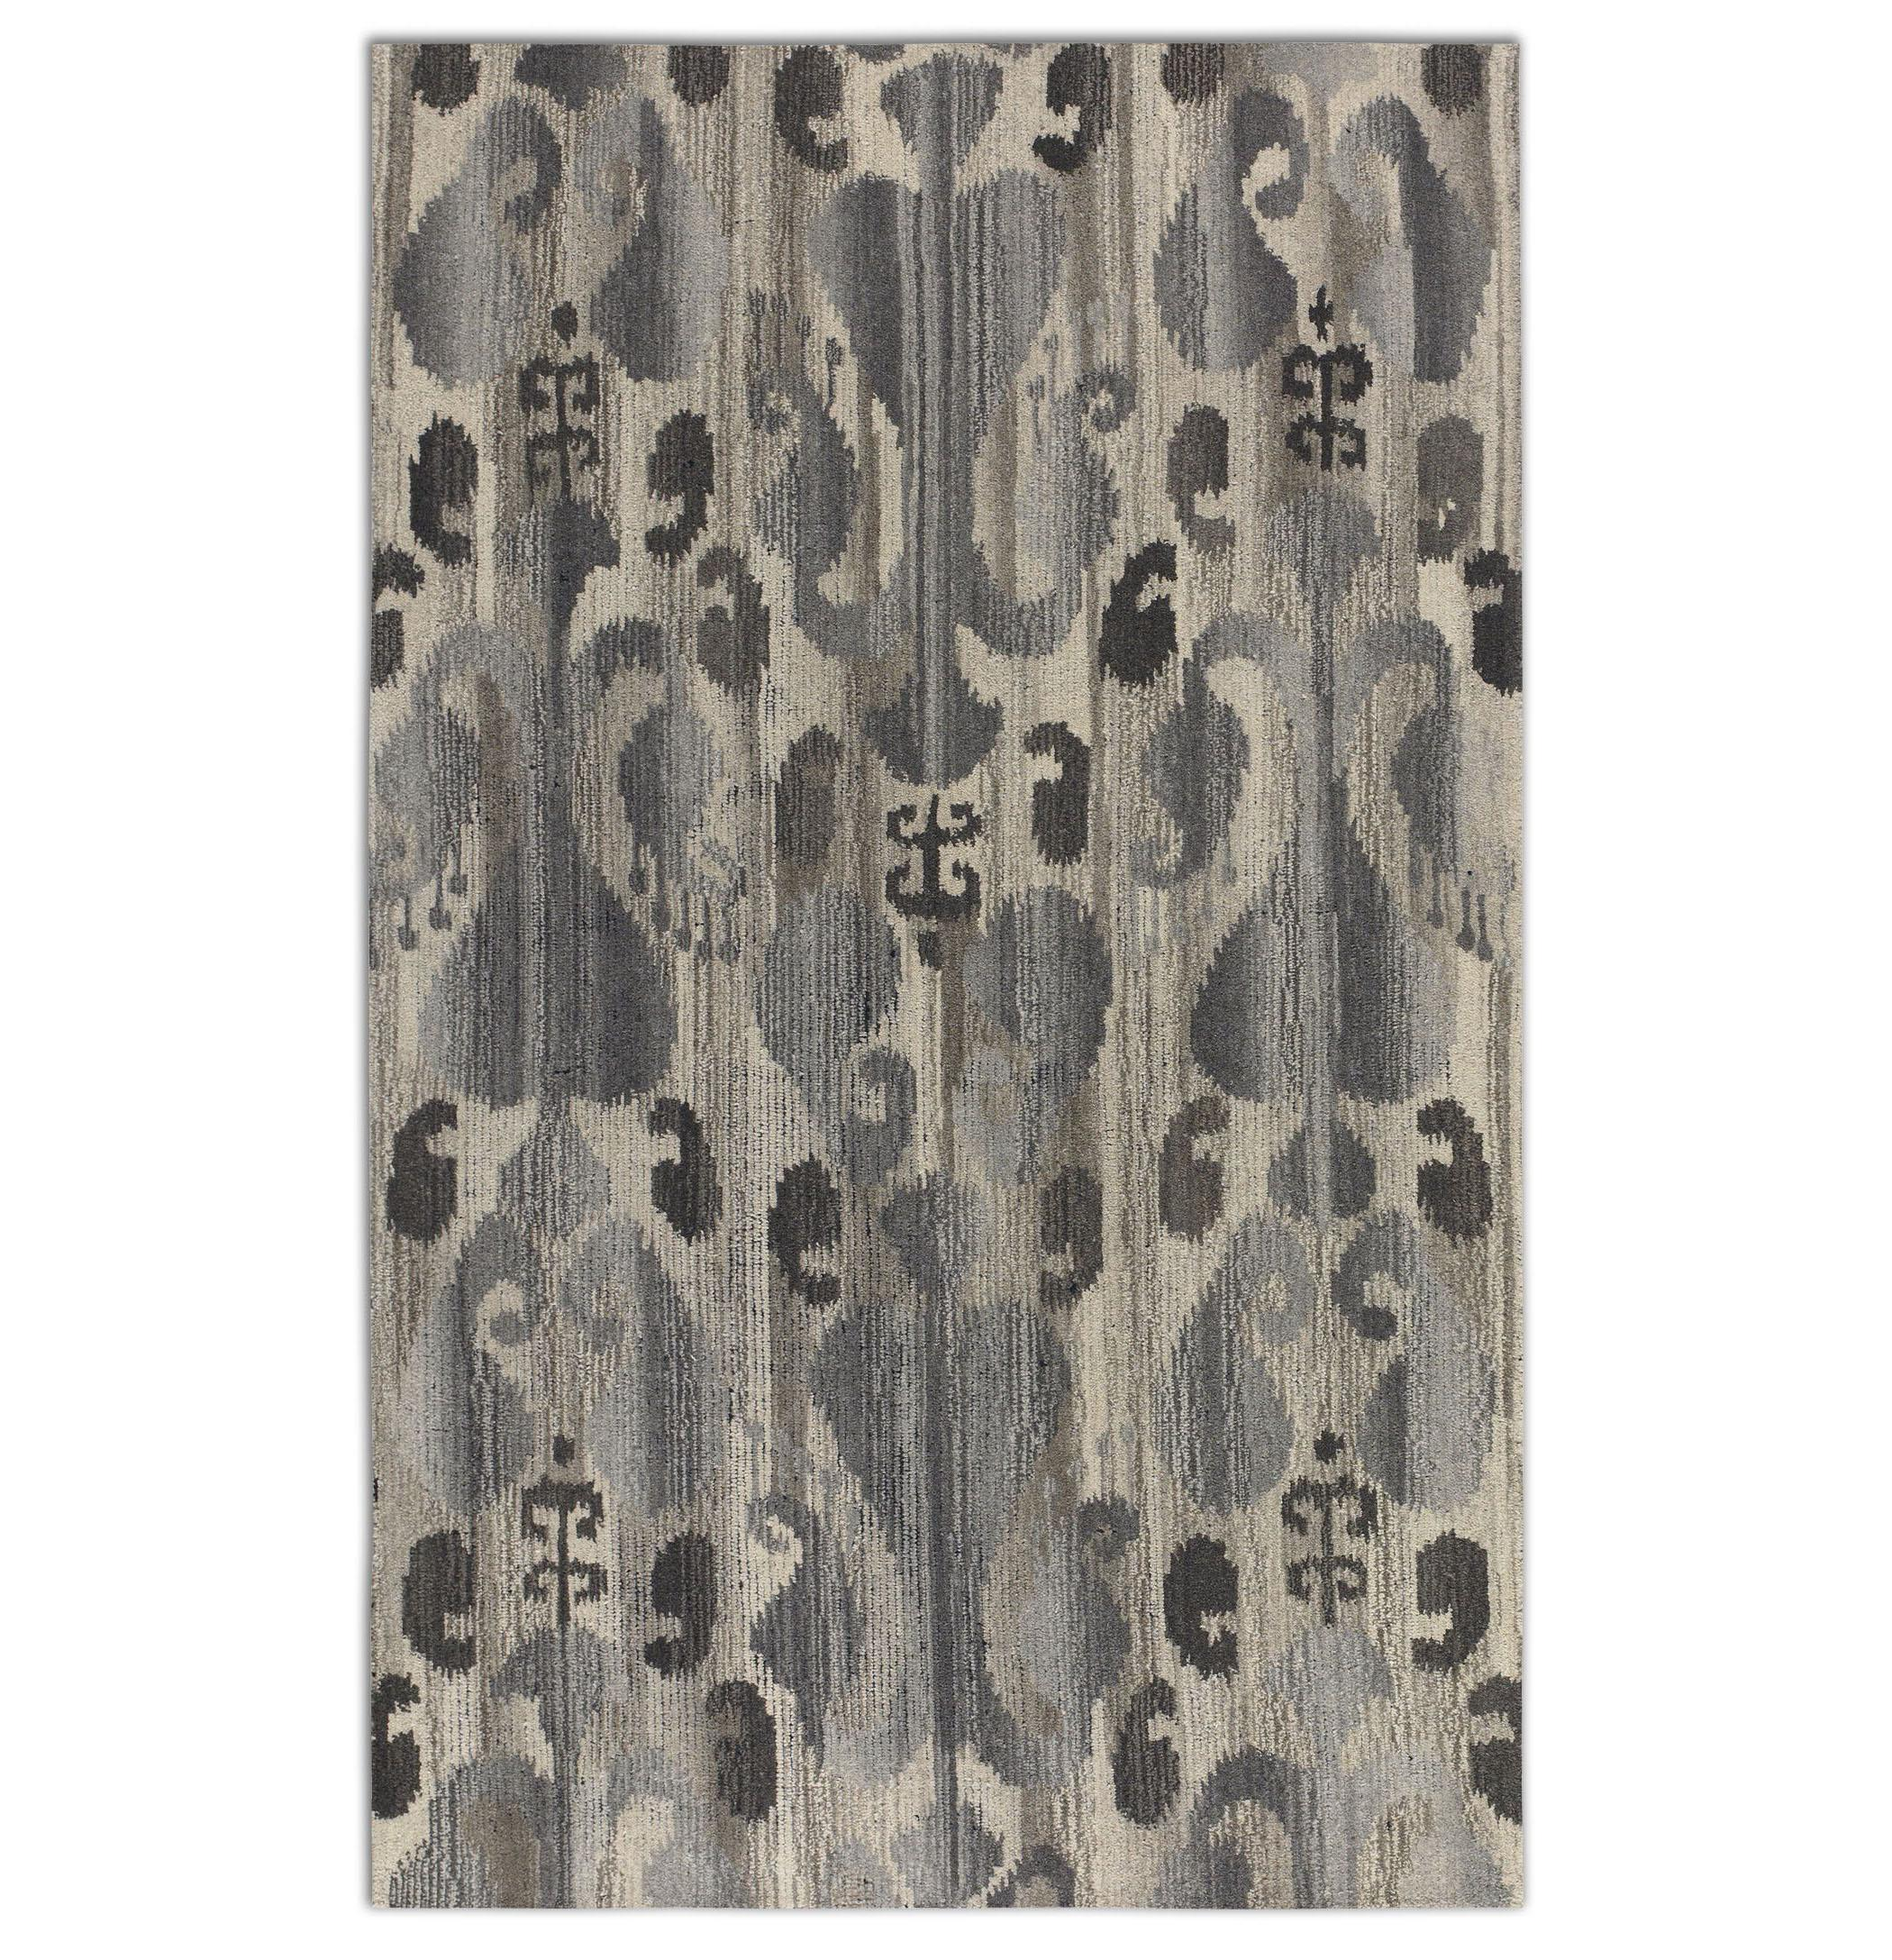 Uttermost Rugs Sepino 8 X 10 Rug - Gray - Item Number: 73048-8